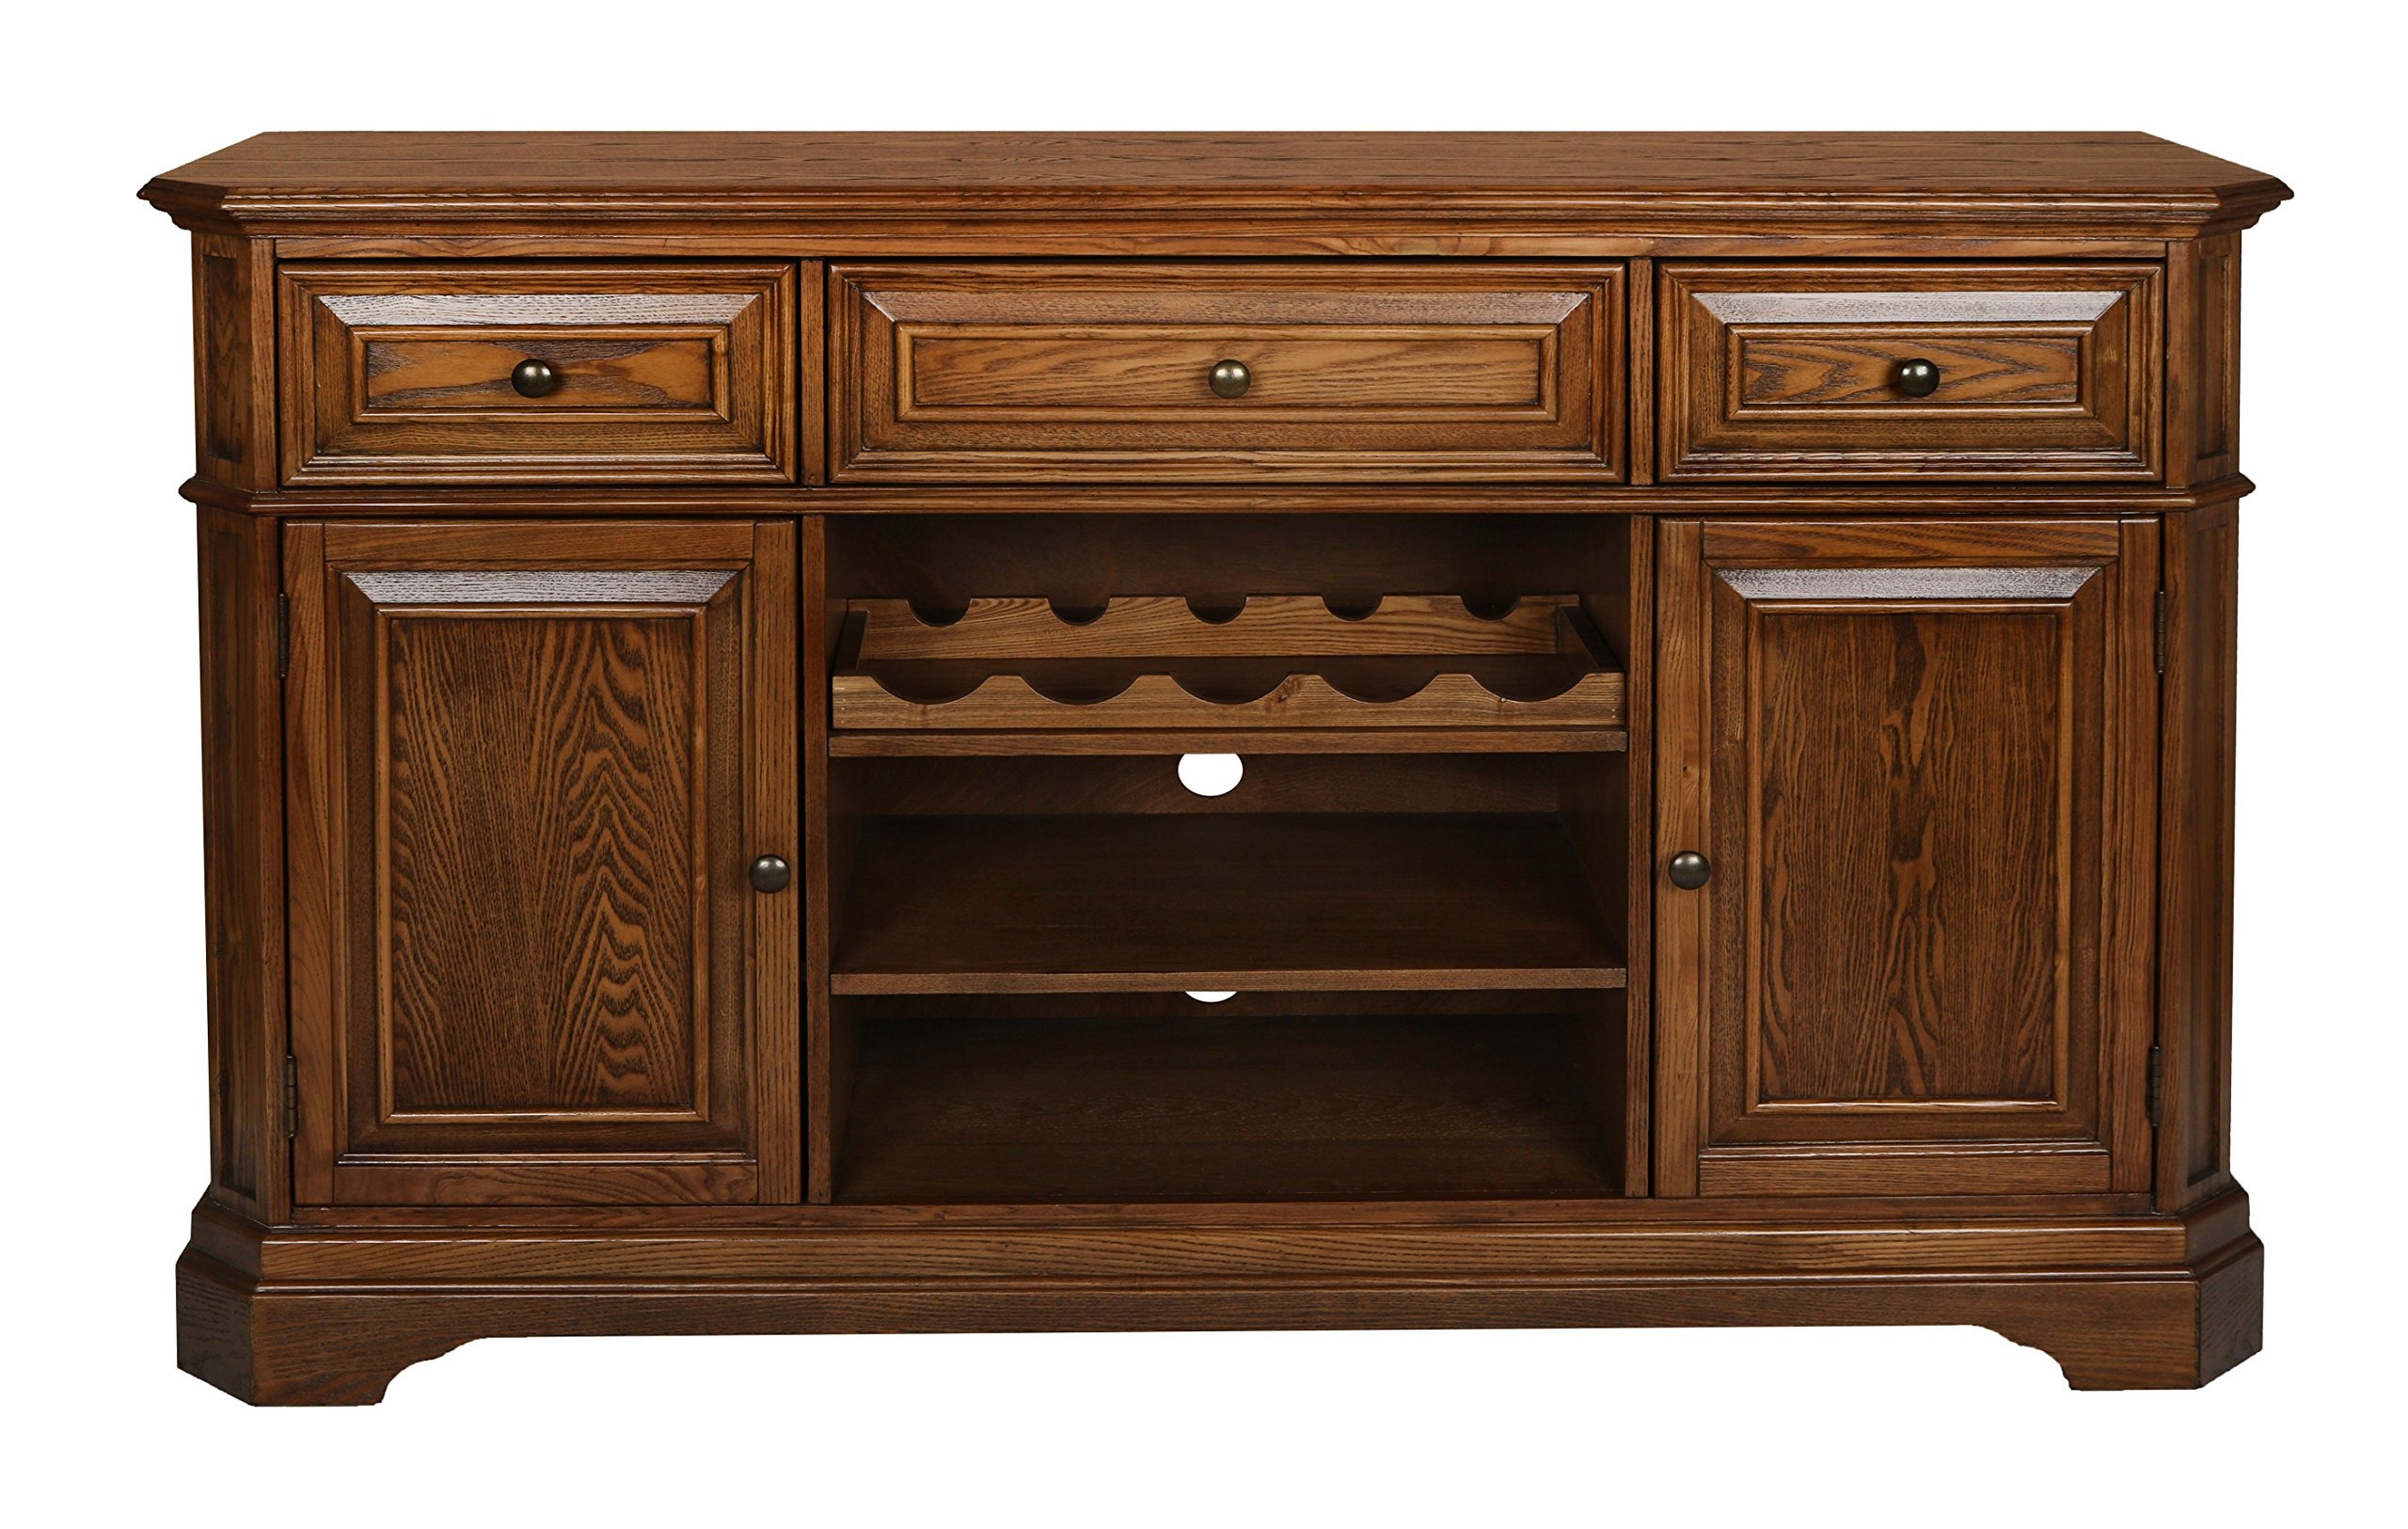 New Classic Oakridge Entertainment Console, Tawny by New Classic